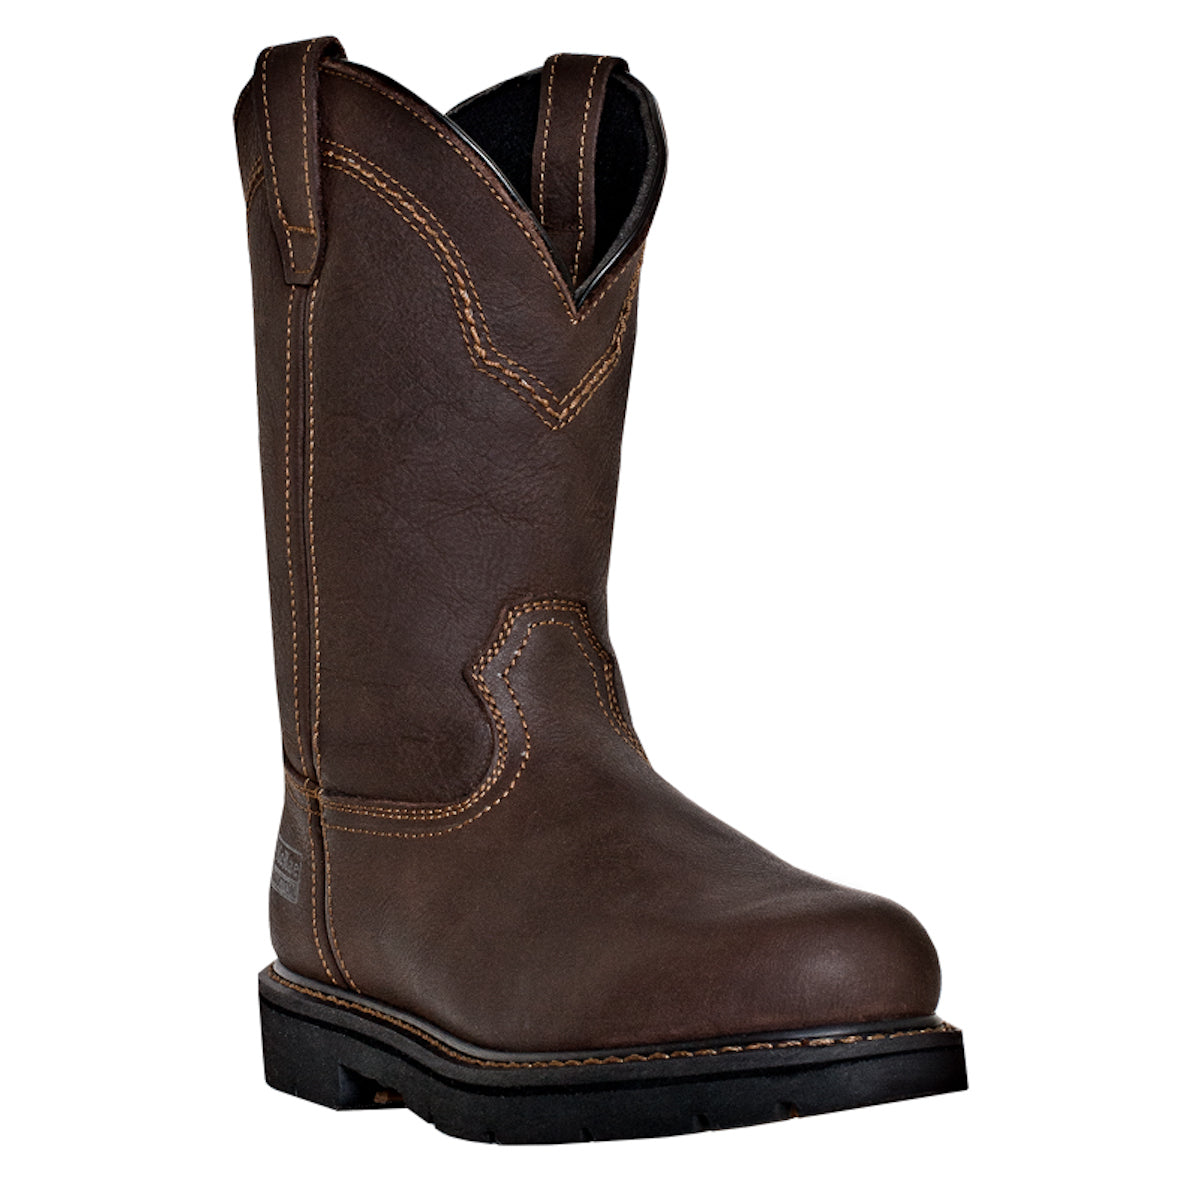 McRae Industrial Men's Steel ... Toe Work Boots clearance purchase 7PXcDg